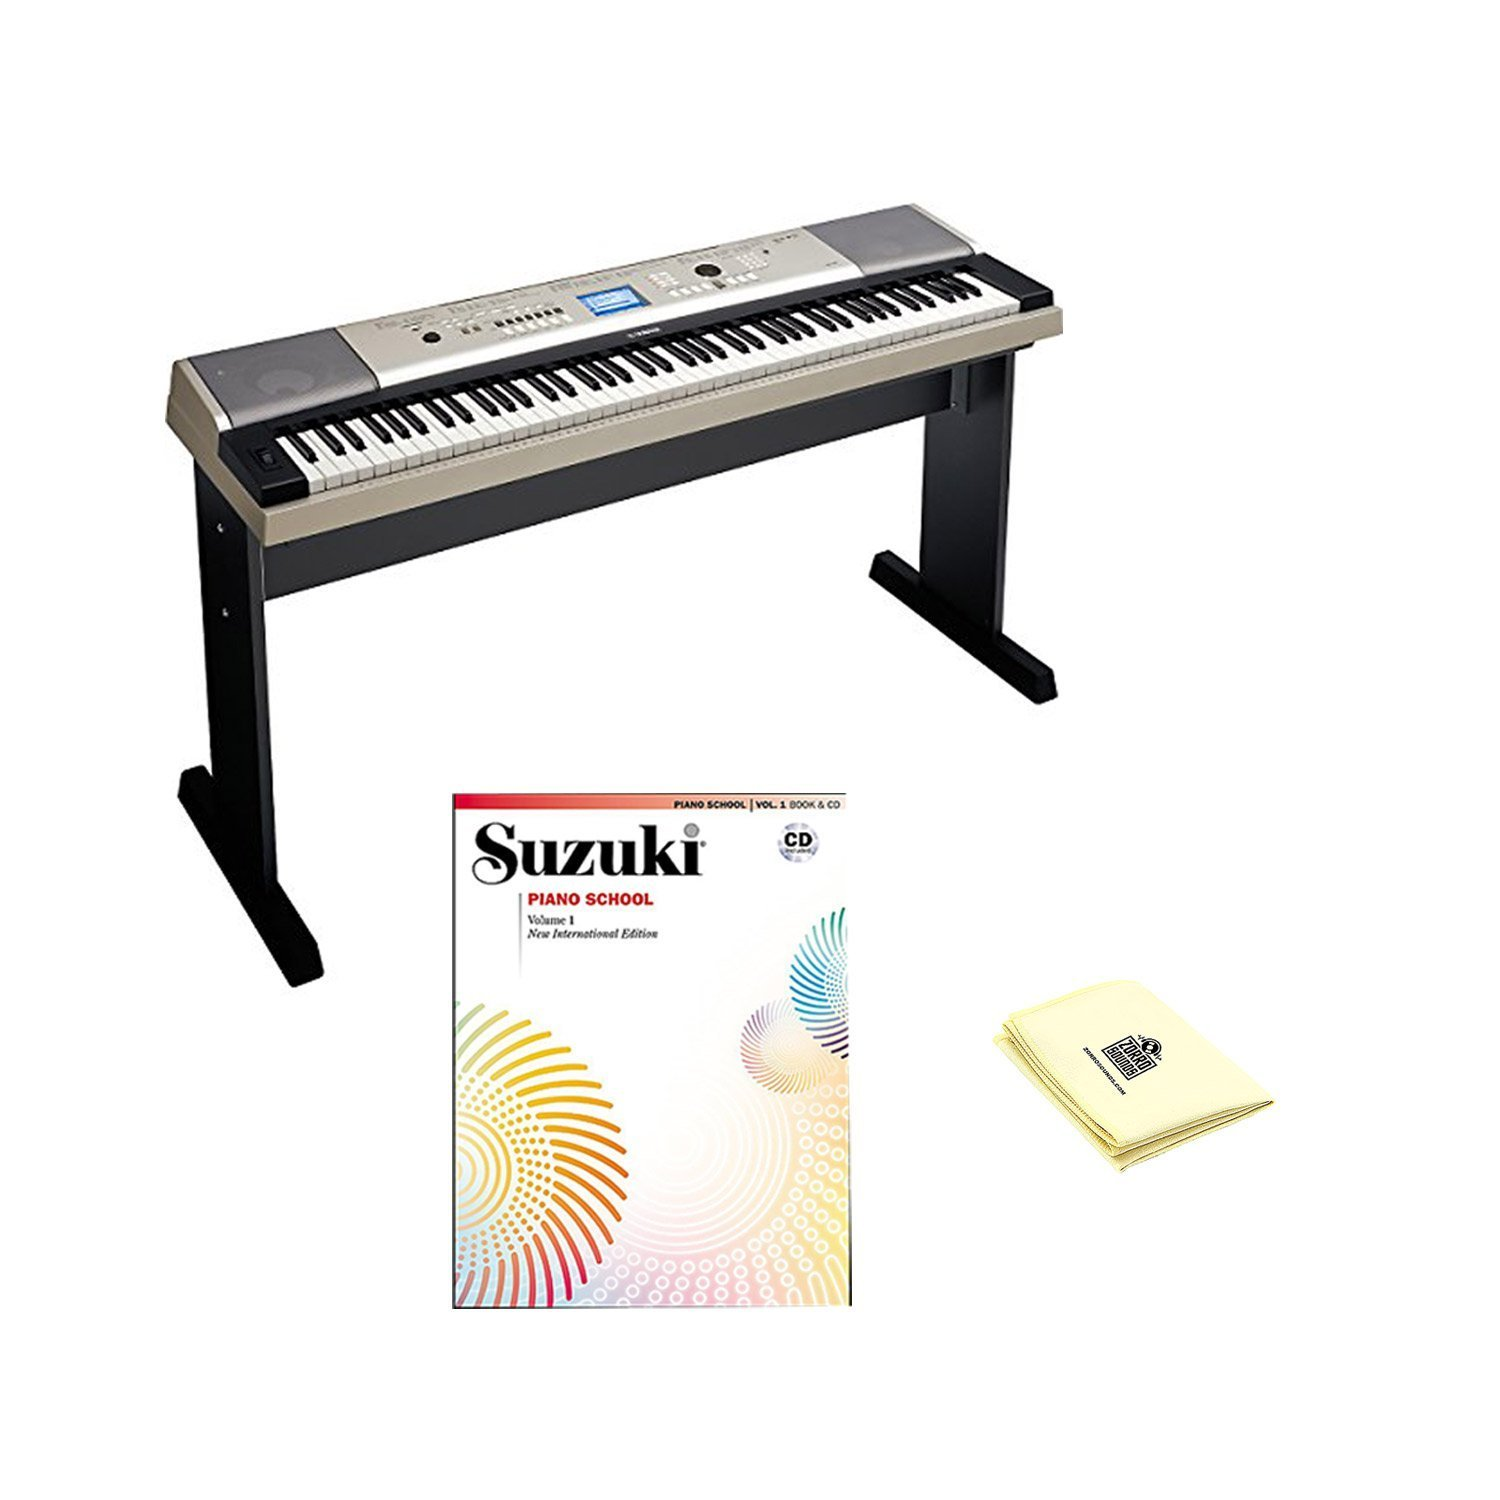 Yamaha YPG-535 88-key Portable Grand Graded-Action USB Keyboard with Matching Stand and Sustain Pedal, Piano Book+CD Volume 1 and Polishing Cloth